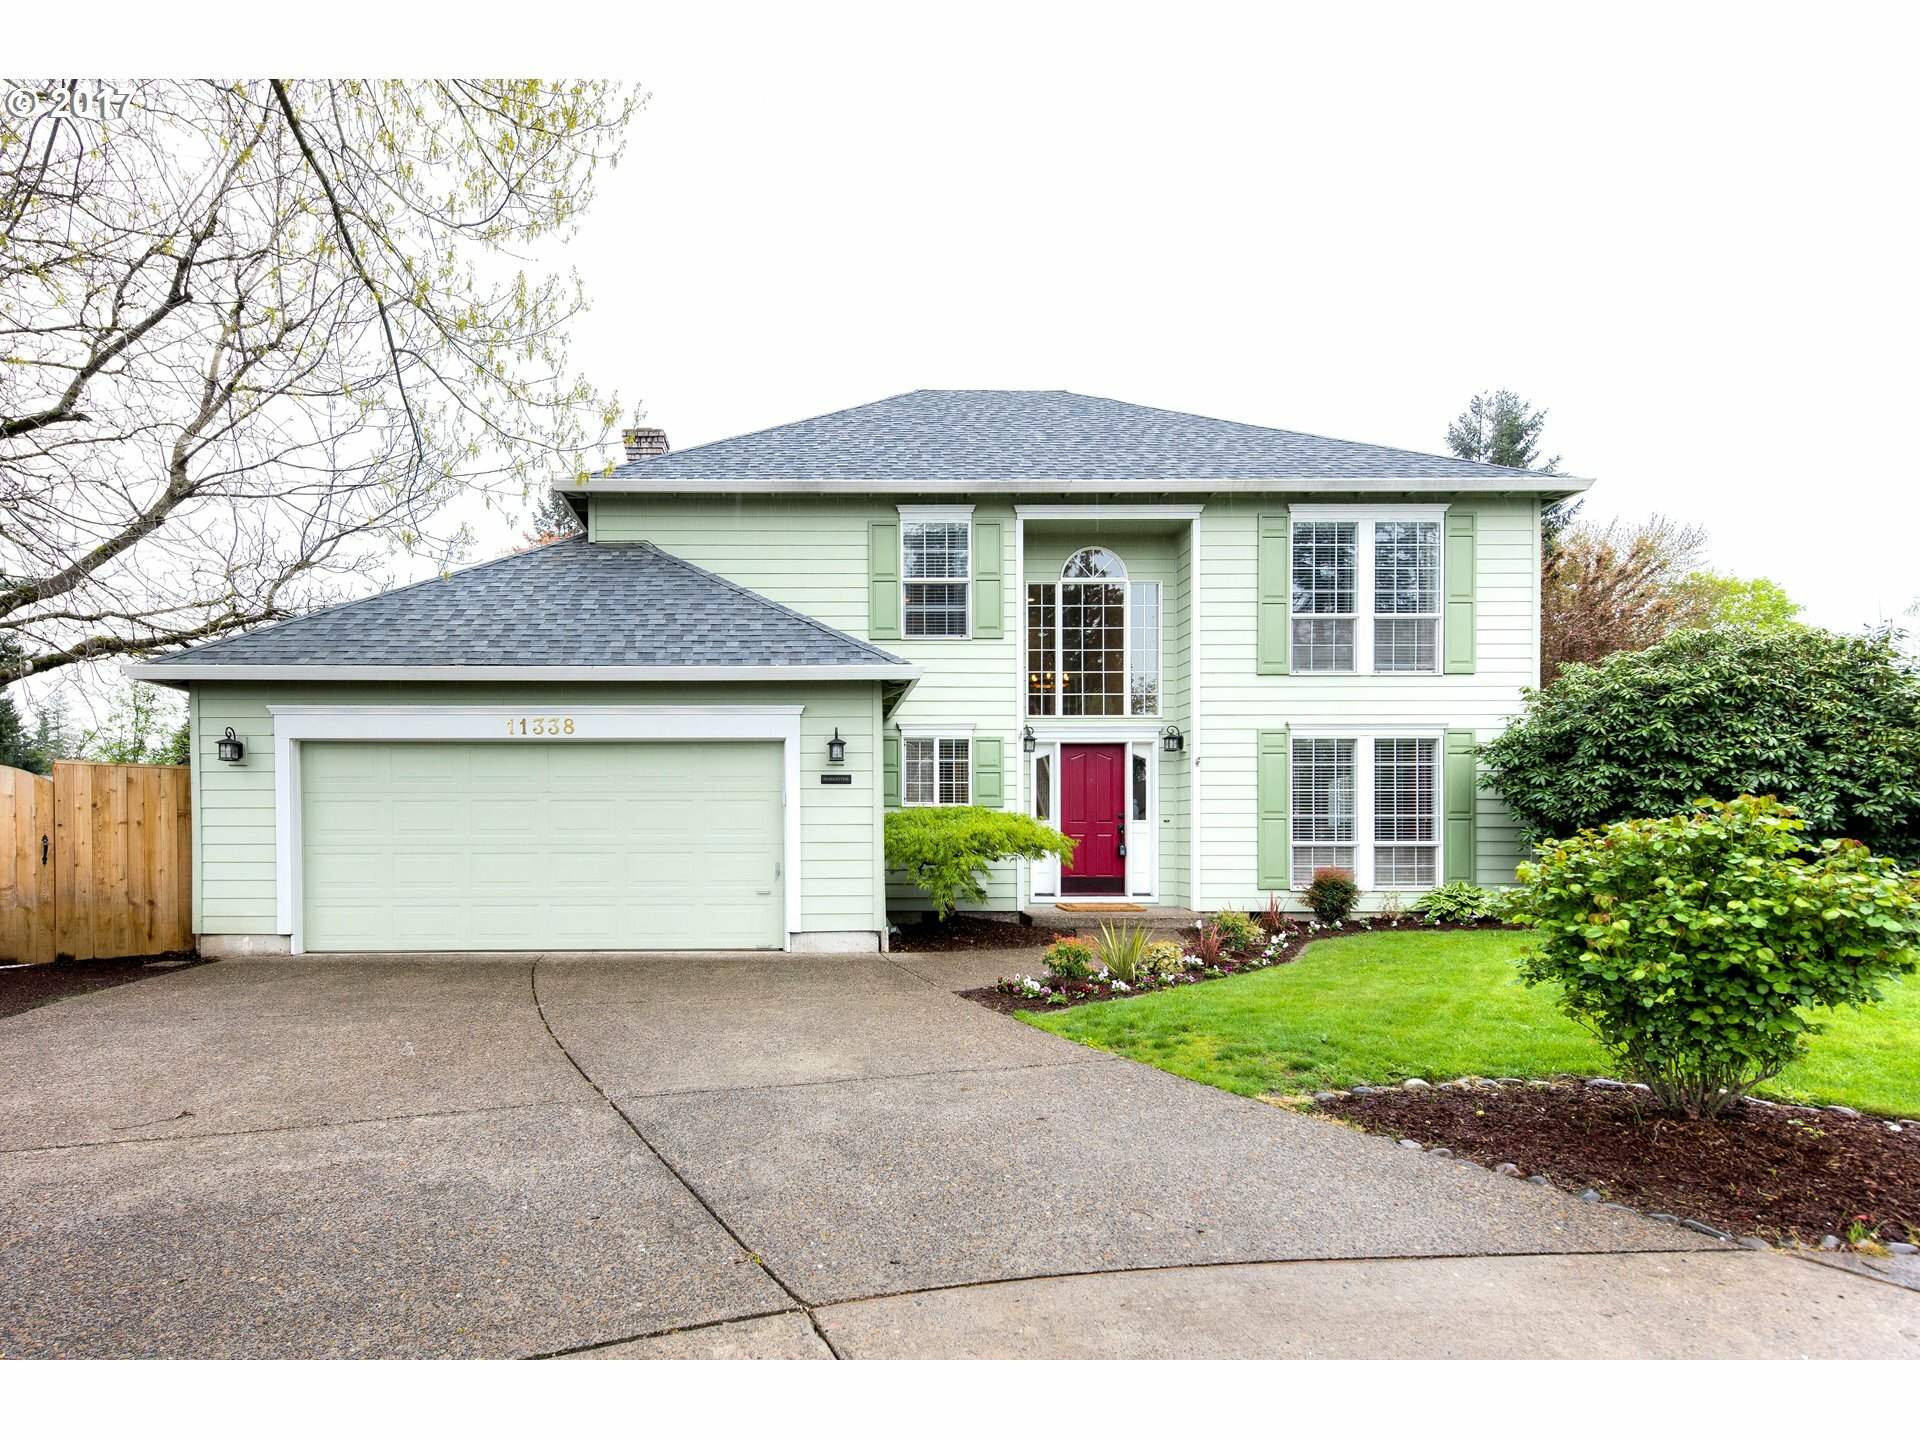 11338 Sw 91st Ct, Tigard, OR - USA (photo 1)